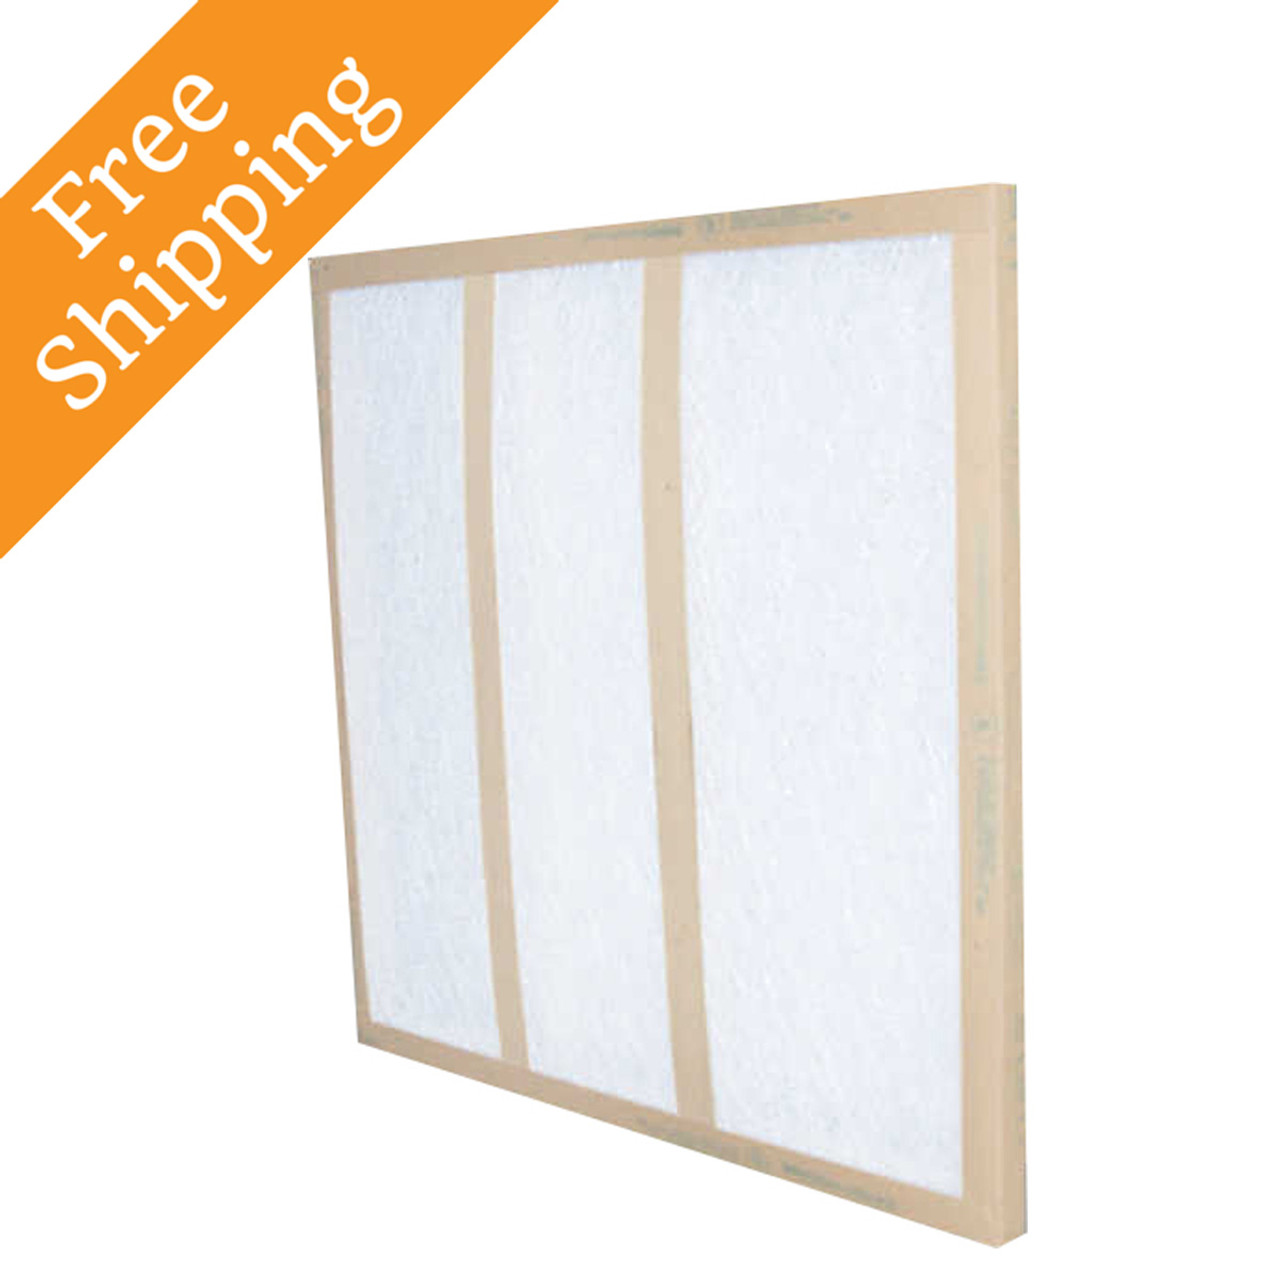 12 PACK 14x20x1 Glasfloss GDS Disposable Furnace Filters